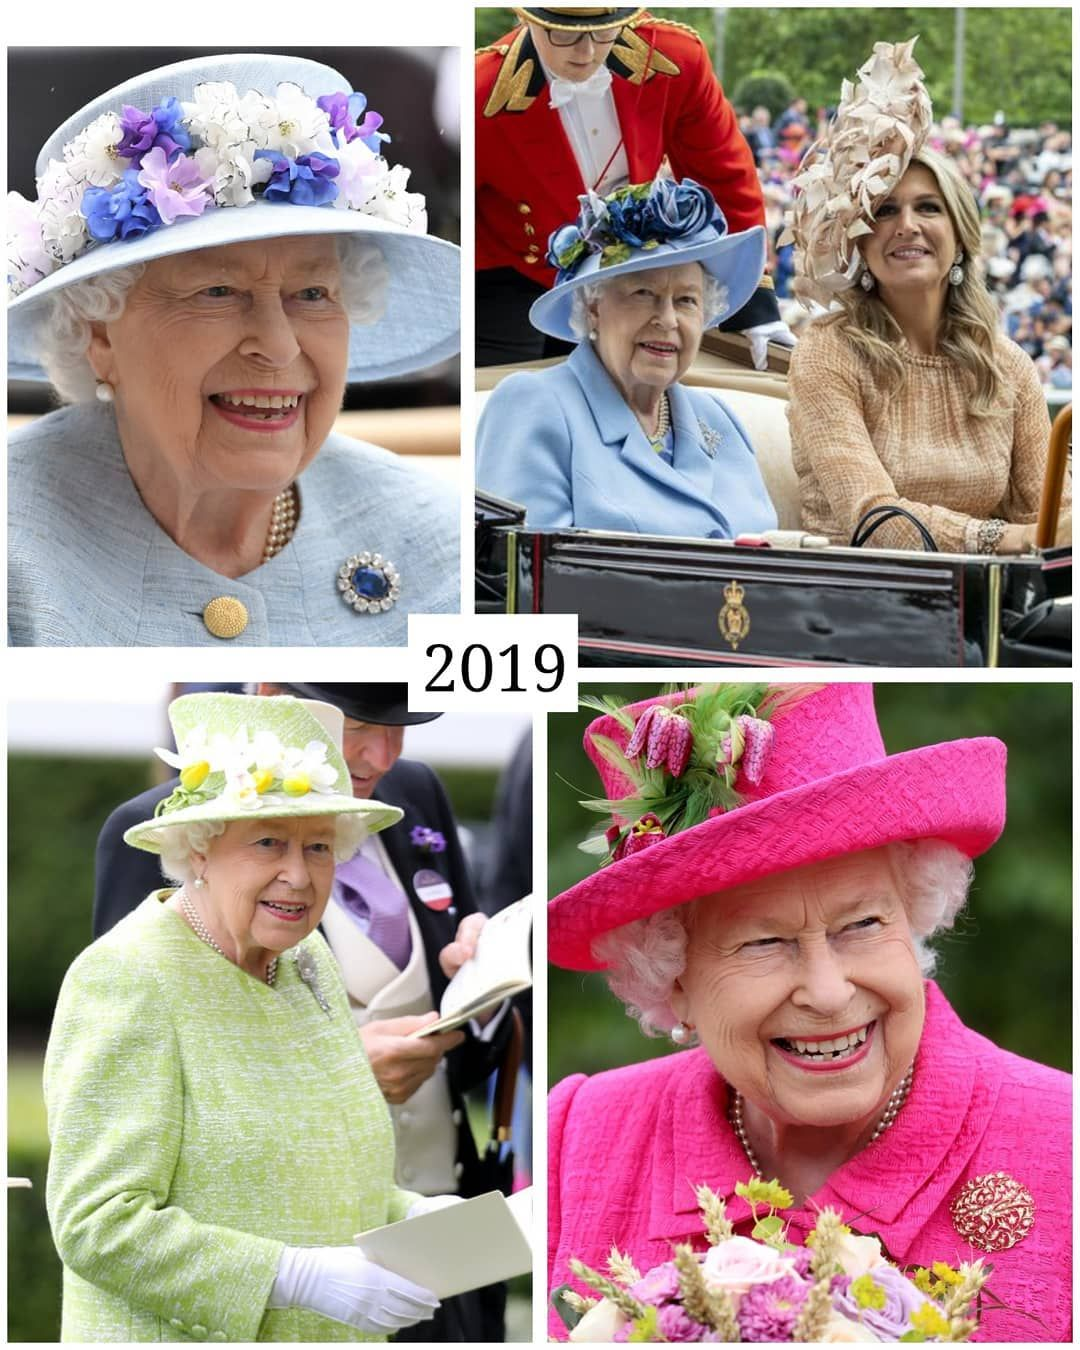 2 957 Likes 52 Comments British Royal Family Britishmonarchy On Instagram Queen Elizabeth Ii 94 Today To Finish My 94 Years Photo Series At L [ 1350 x 1080 Pixel ]